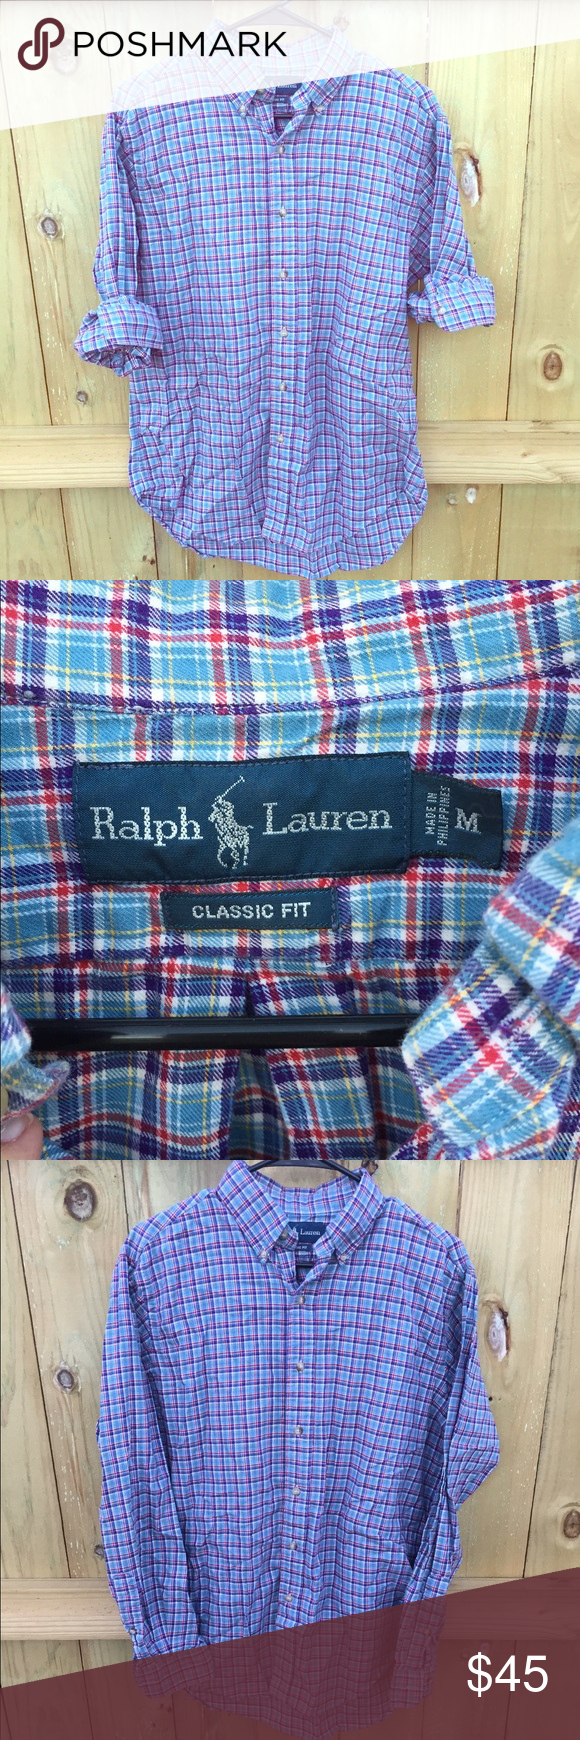 """Men's Ralph Lauren Plaid Button Down🔹 Plaid button down top. Classic fit. Material: 100% cotton. Measurements: 18"""" across the shoulders, 27.5"""" from shoulder to bottom. 